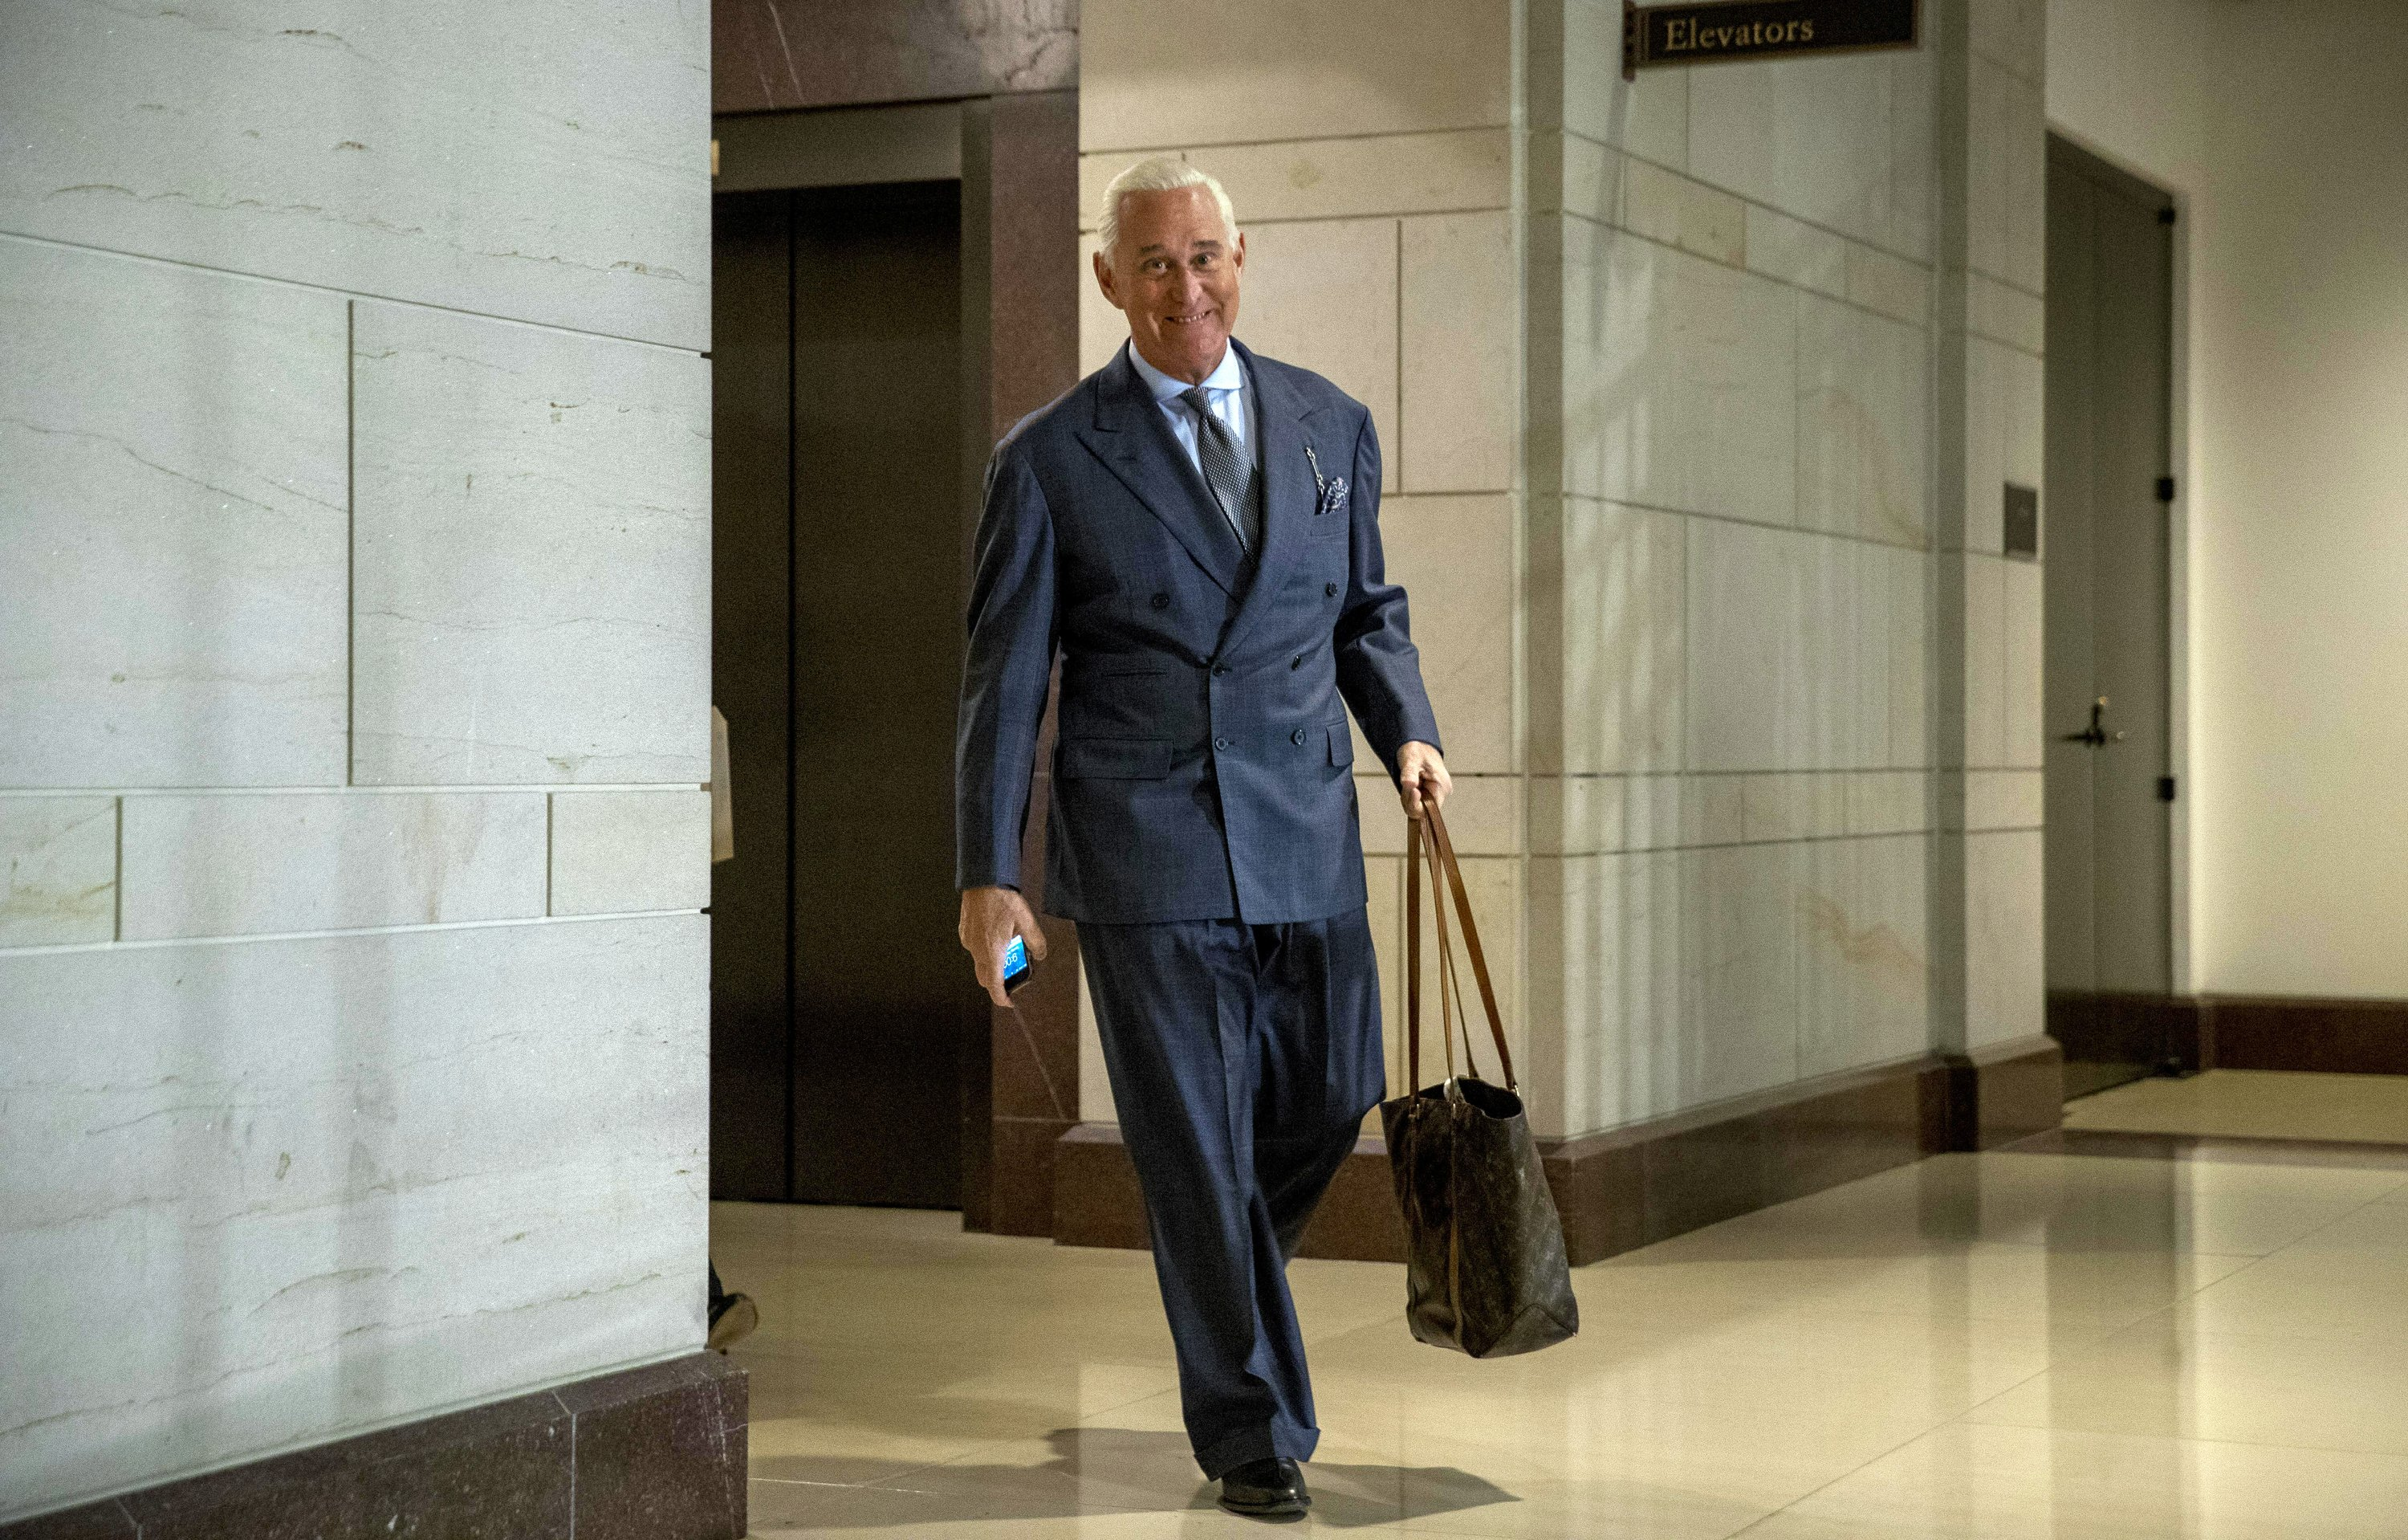 Roger Stone associate expects to be charged in Mueller probe